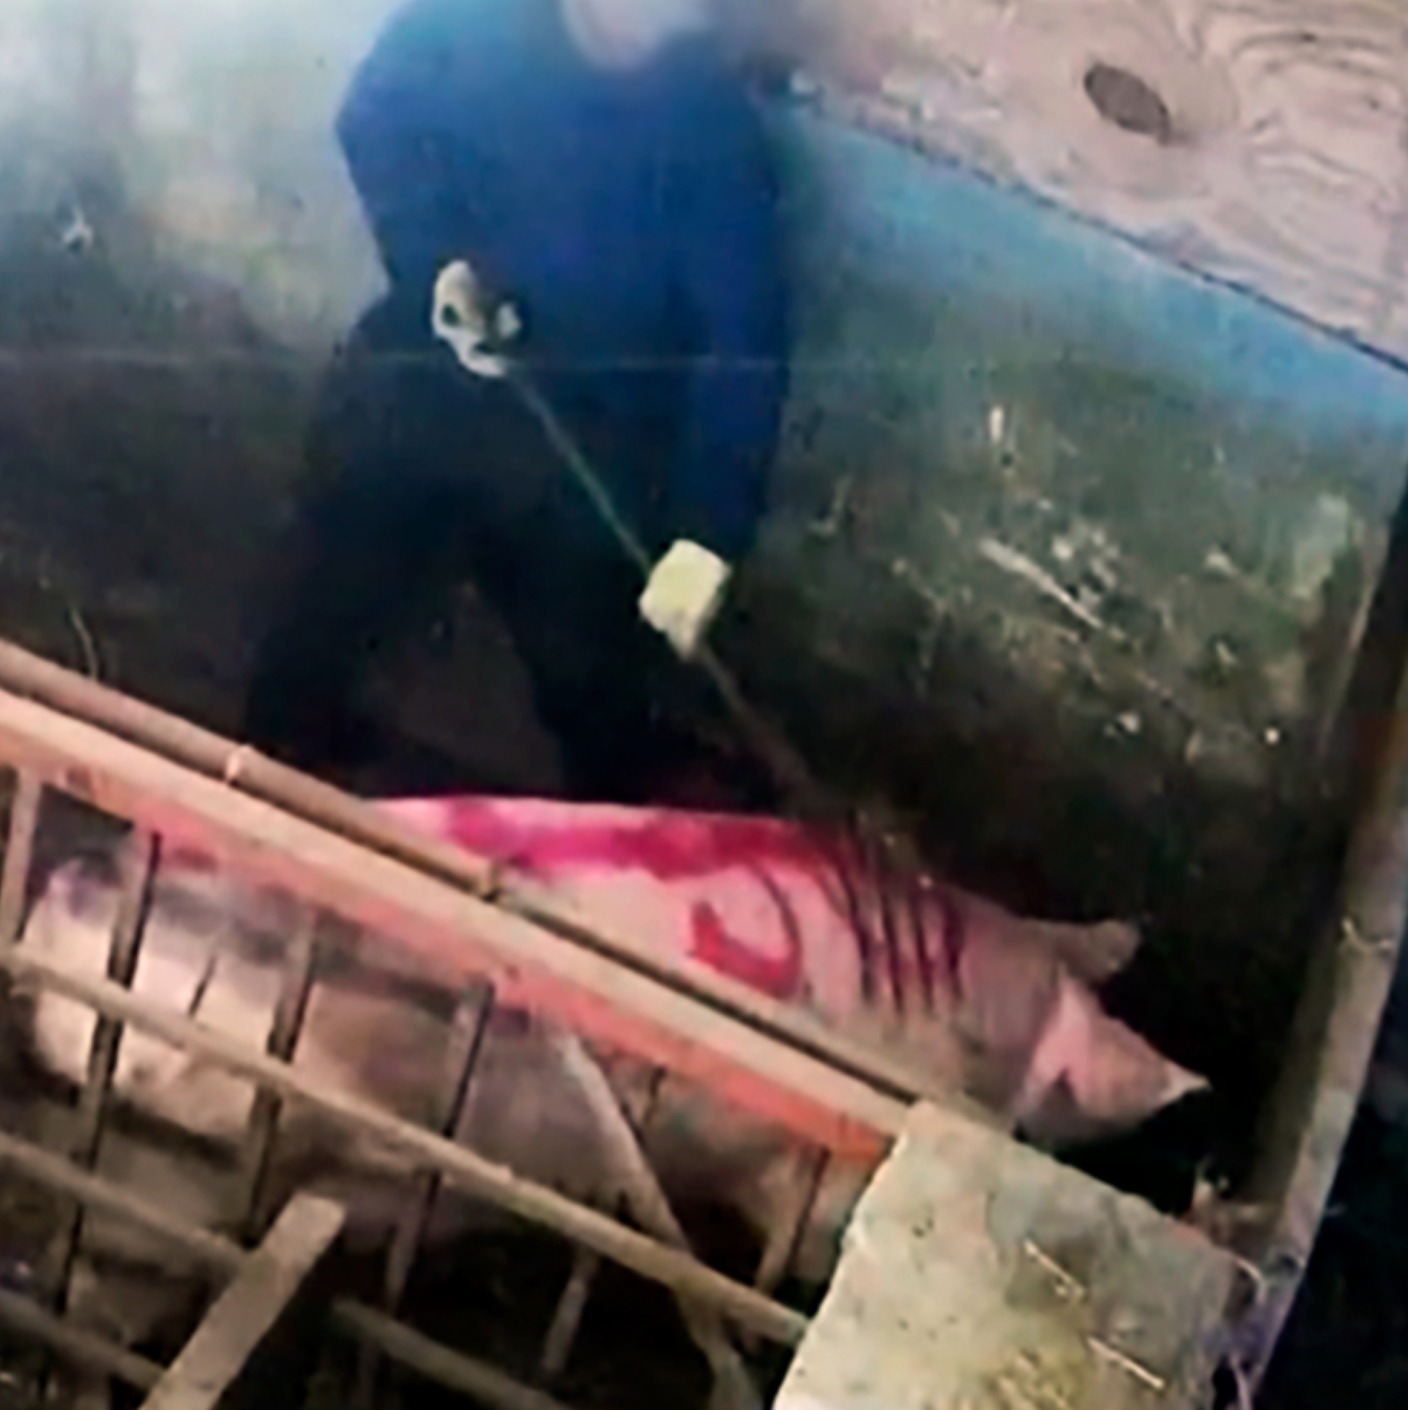 Undercover Footage Reveals Violent Animal Abuse On Farm